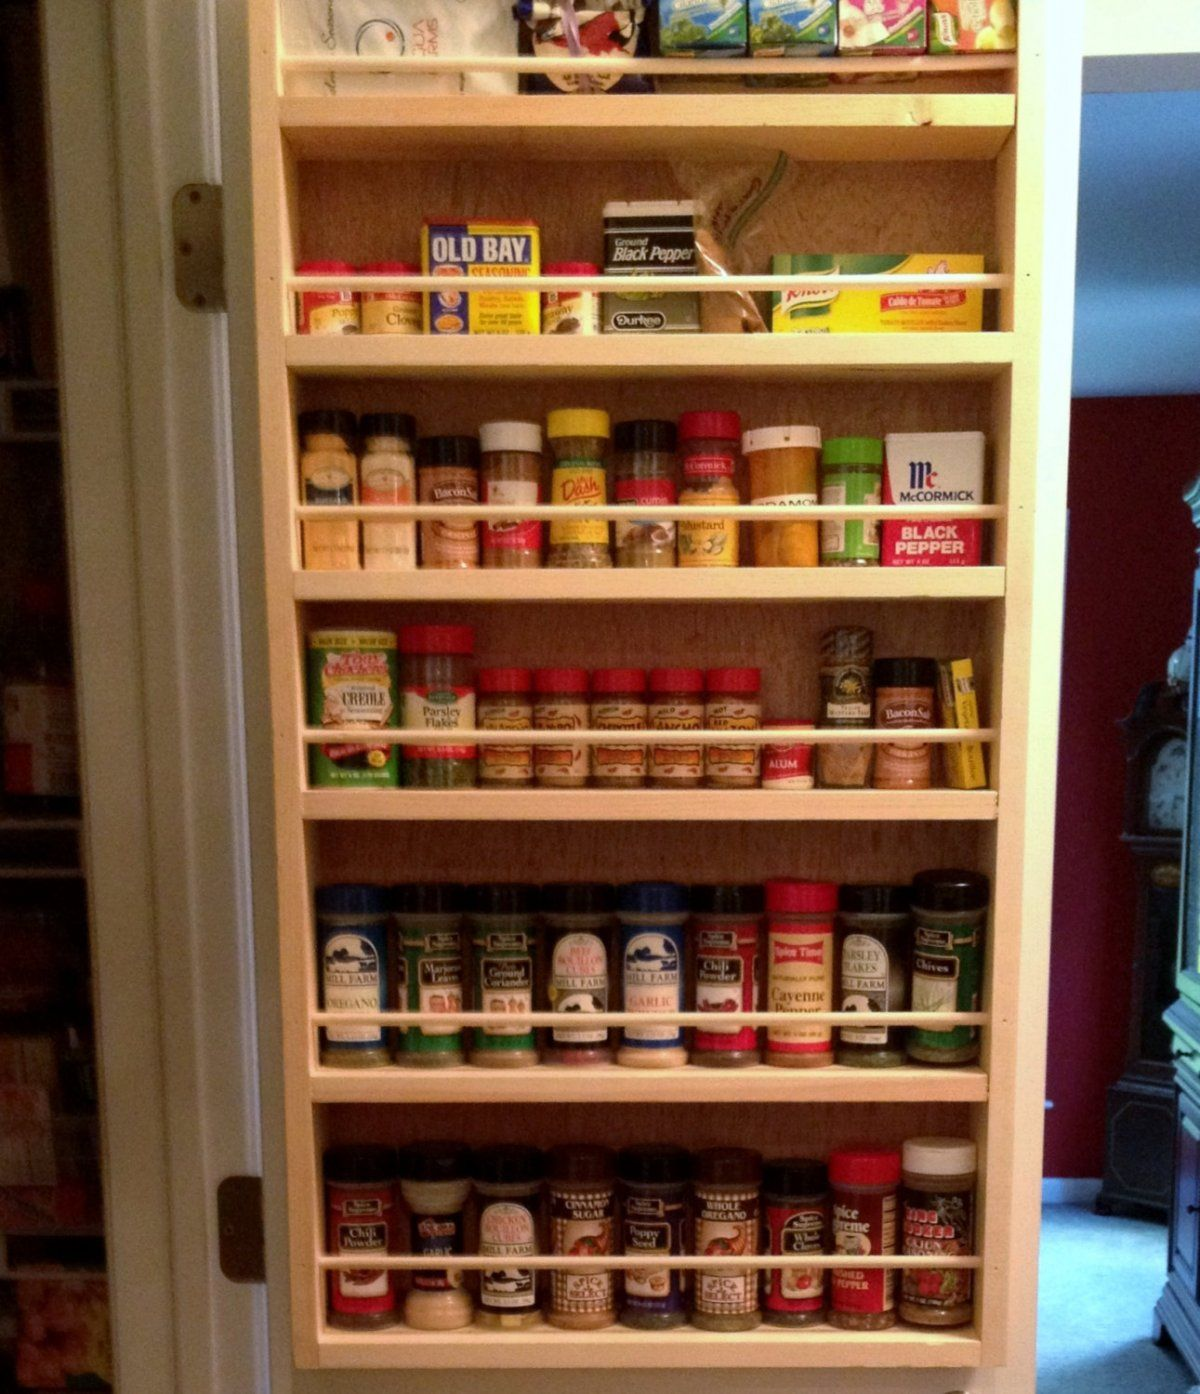 Kitchen Cabinet Spice Rack Organizer: Spice Rack On Inside Of Pantry Doors.